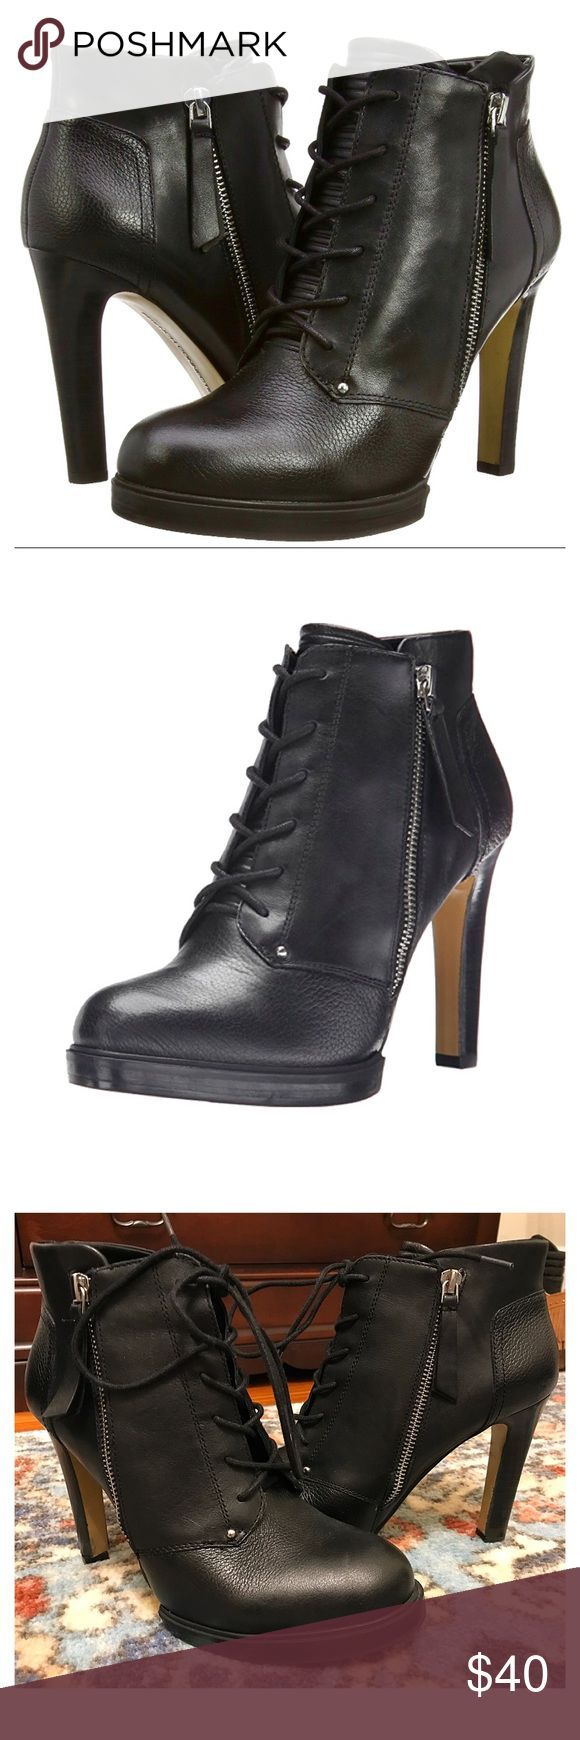 """French Connection Black Bootie French Connection """"Beatrix Bootie"""" : in perfect condition only wore 1-2 times Black Leather Round toe Laced vamp Side zipper closure Quilted tongue 4""""heel French Connection Shoes Ankle Boots & Booties"""